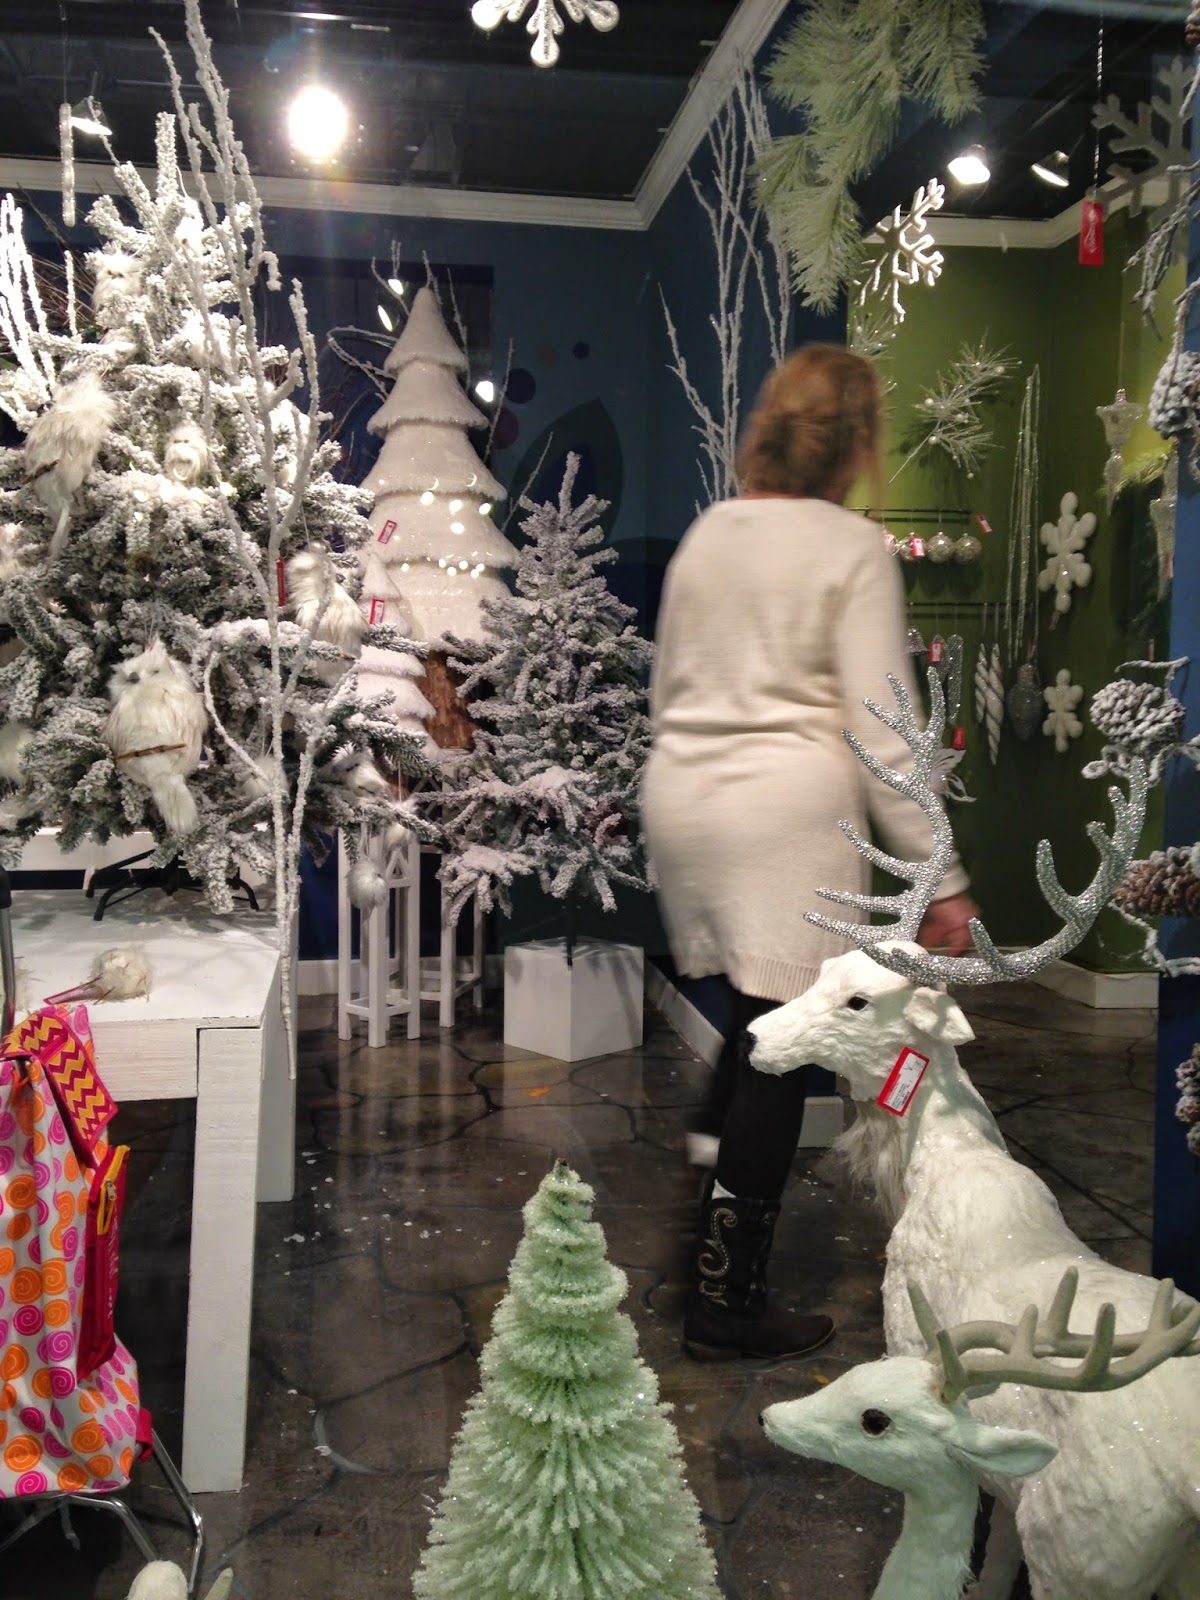 The White Rabbit Christmas Ordering At Dallas Market 2015 Pisau Set Swan My Mom Absolutely Adored These Swans With Little Crowns On Their Heads We Might Put Them In Window So Cute